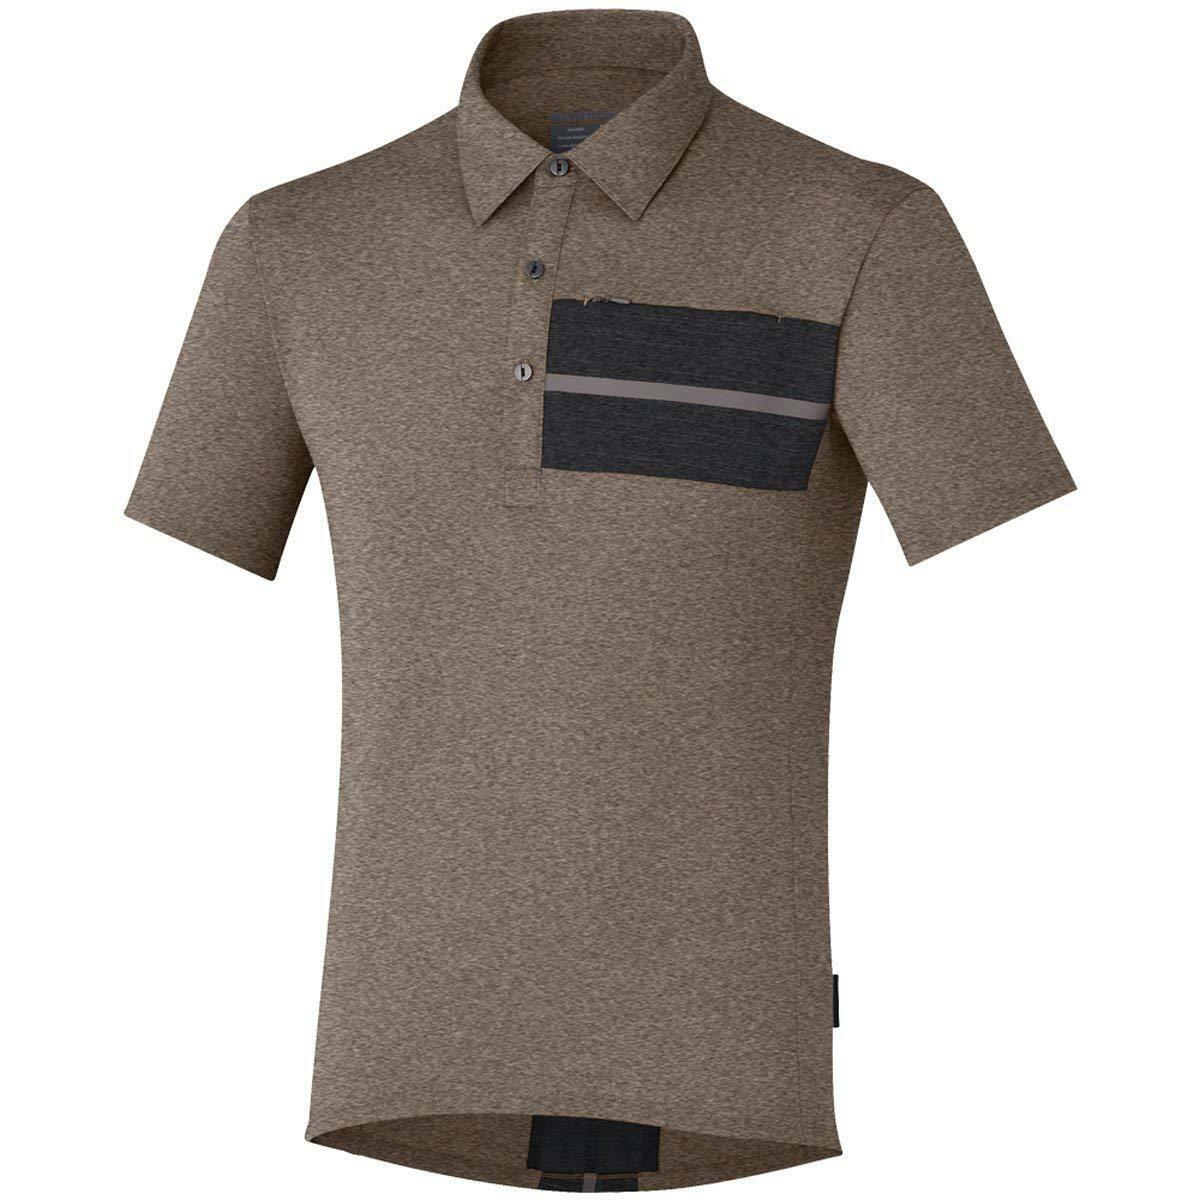 Shimano ECWJSCSQS31MA5 Transit  Polo Men LG Morel Casual Style Cycle Polo Shirt  wholesale price and reliable quality